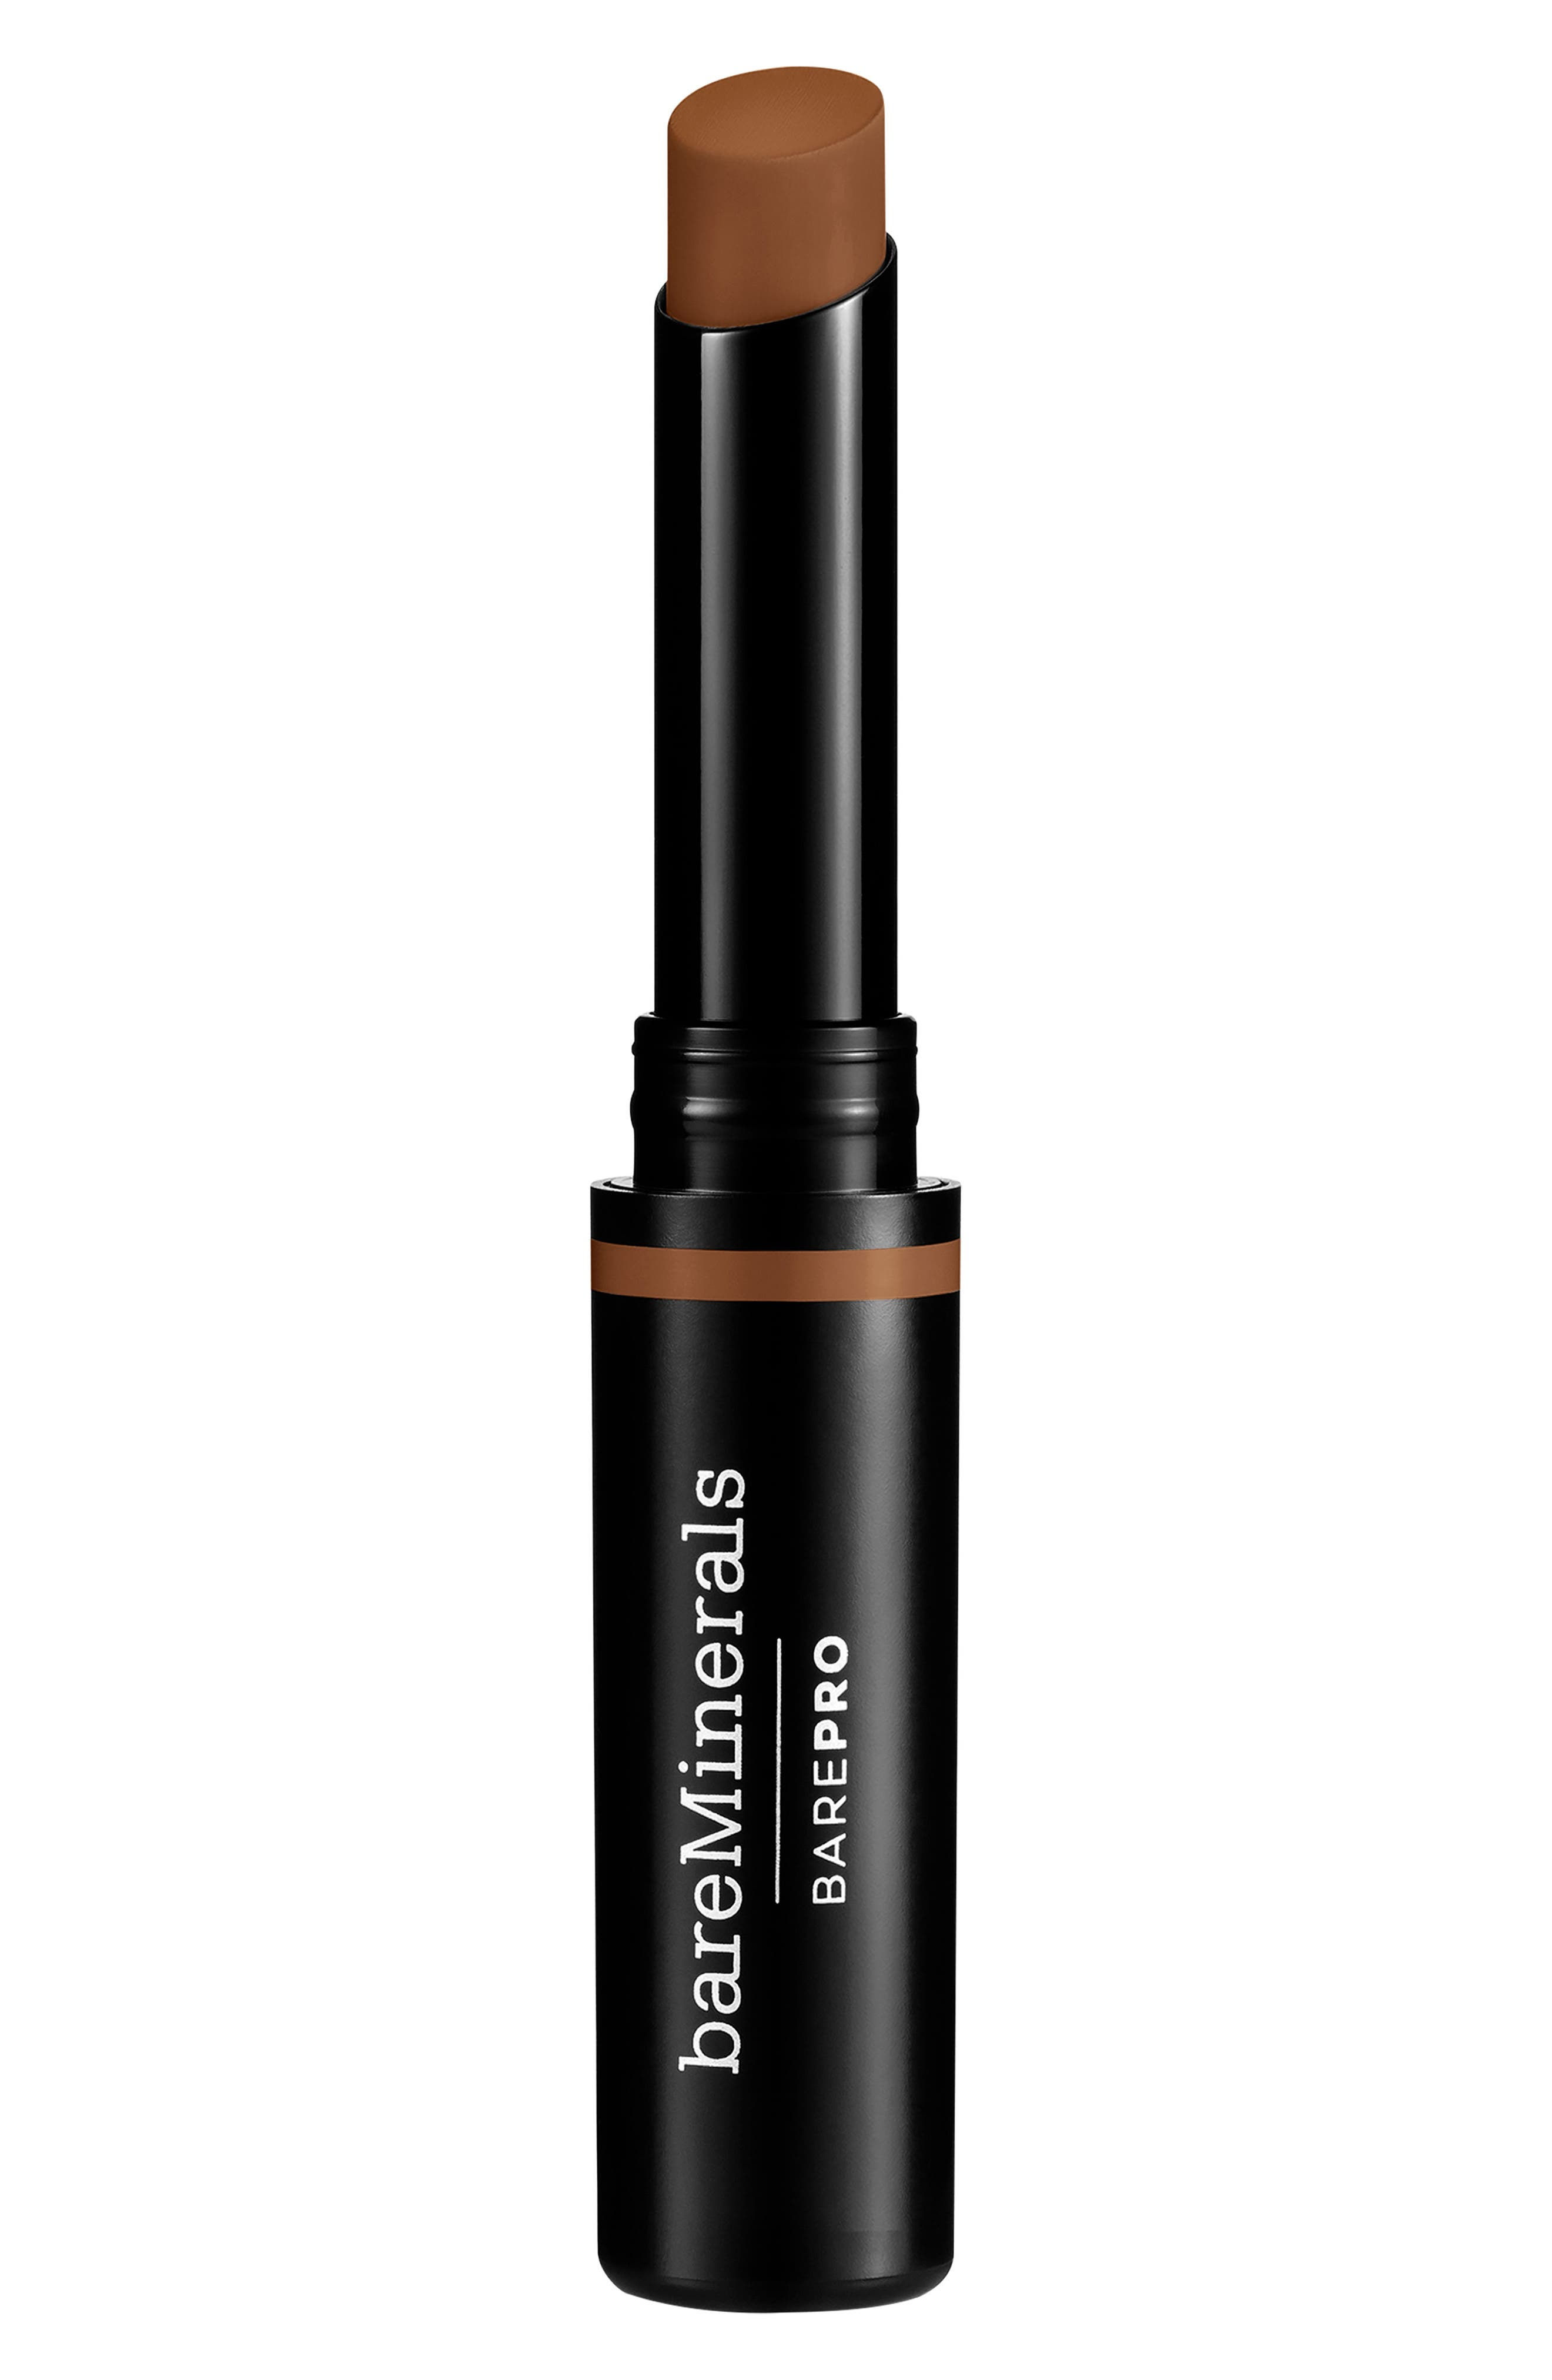 What it is: A waterproof ultra-creamy stick that glides on with zero drag and is resistant to creasing and humidity. What it does: This highly pigmented formula is powered by Mineral Lock Long Wear Technology to lock in place all day. Developed to precisely match your BarePro liquid and powder formulations, this concealer wears for 16 hours and nourishes the skin. Research results: In a one-week U.S. study of 95 women:- 97% agreed this concealer